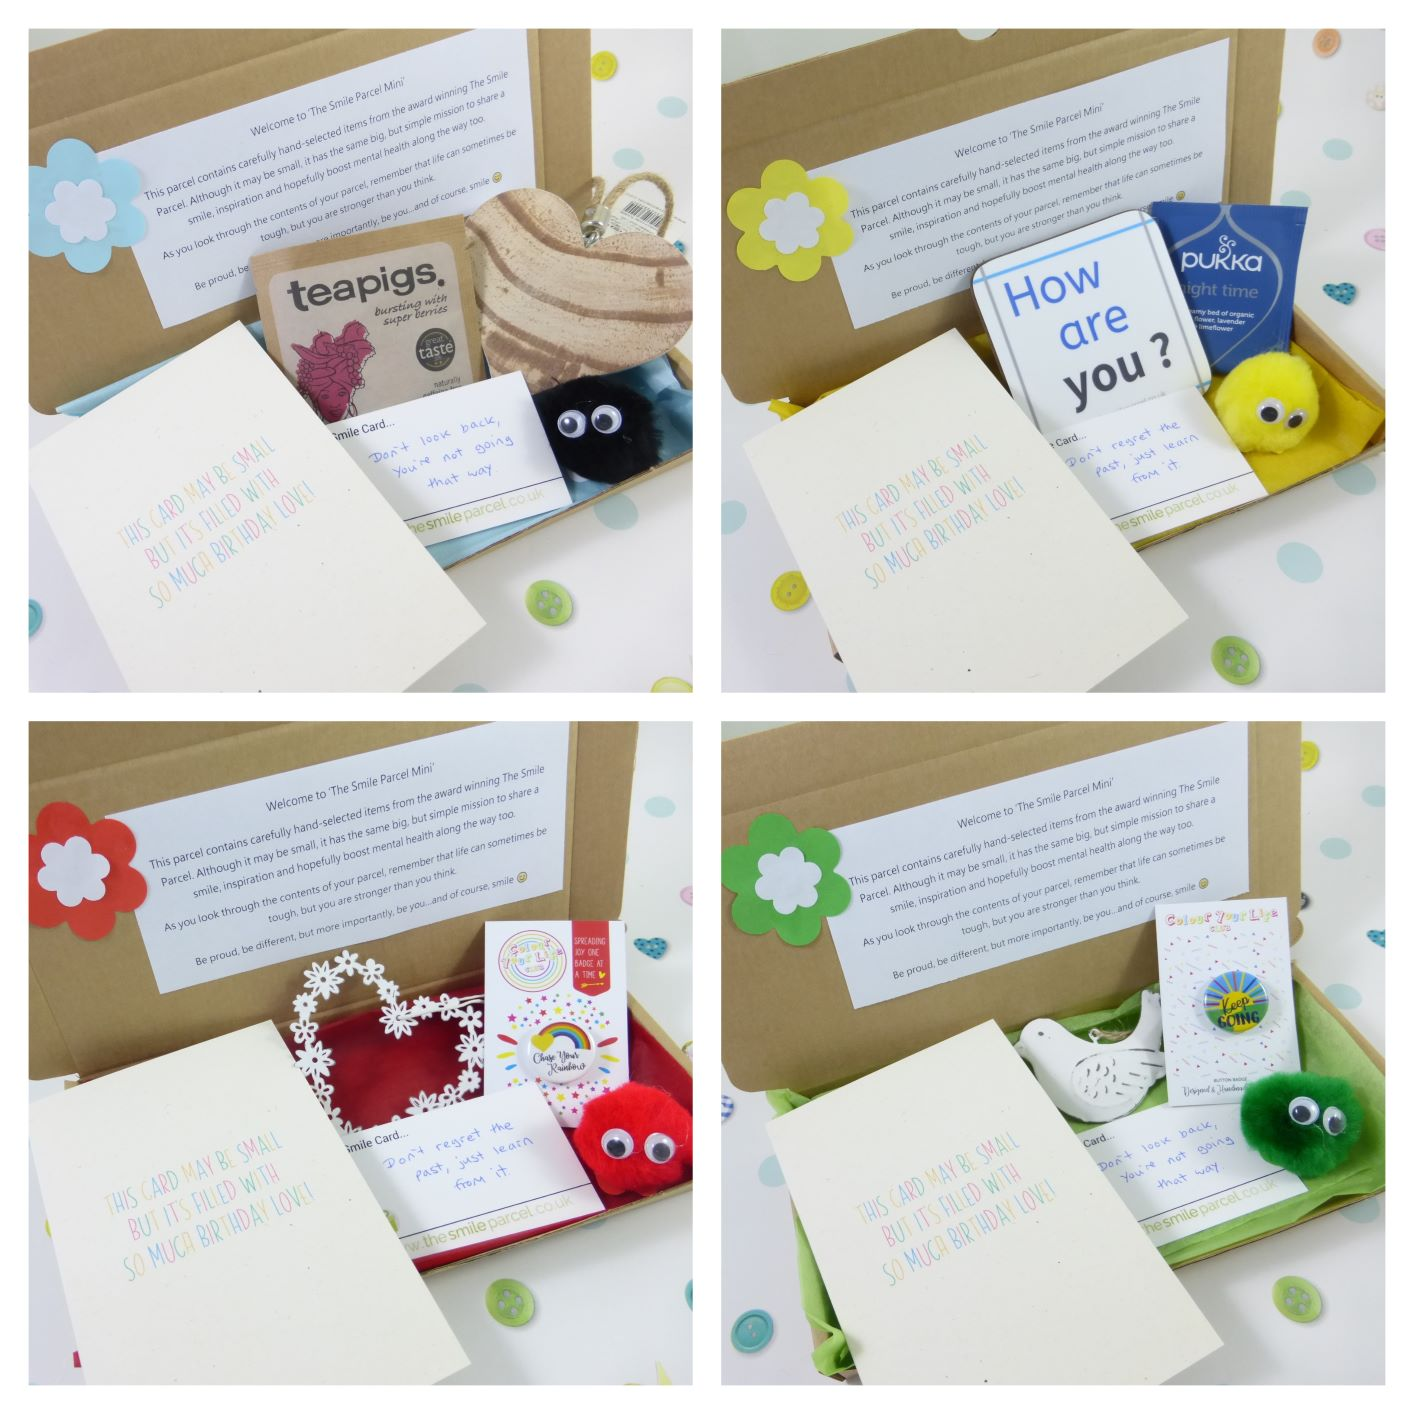 Happy Birthday, Letterbox Friendly, Pick Me Up Gift, The Smile Parcel Mini, Birthday Gift, Happy Mail, Mental Health Gift Kind Shop 3